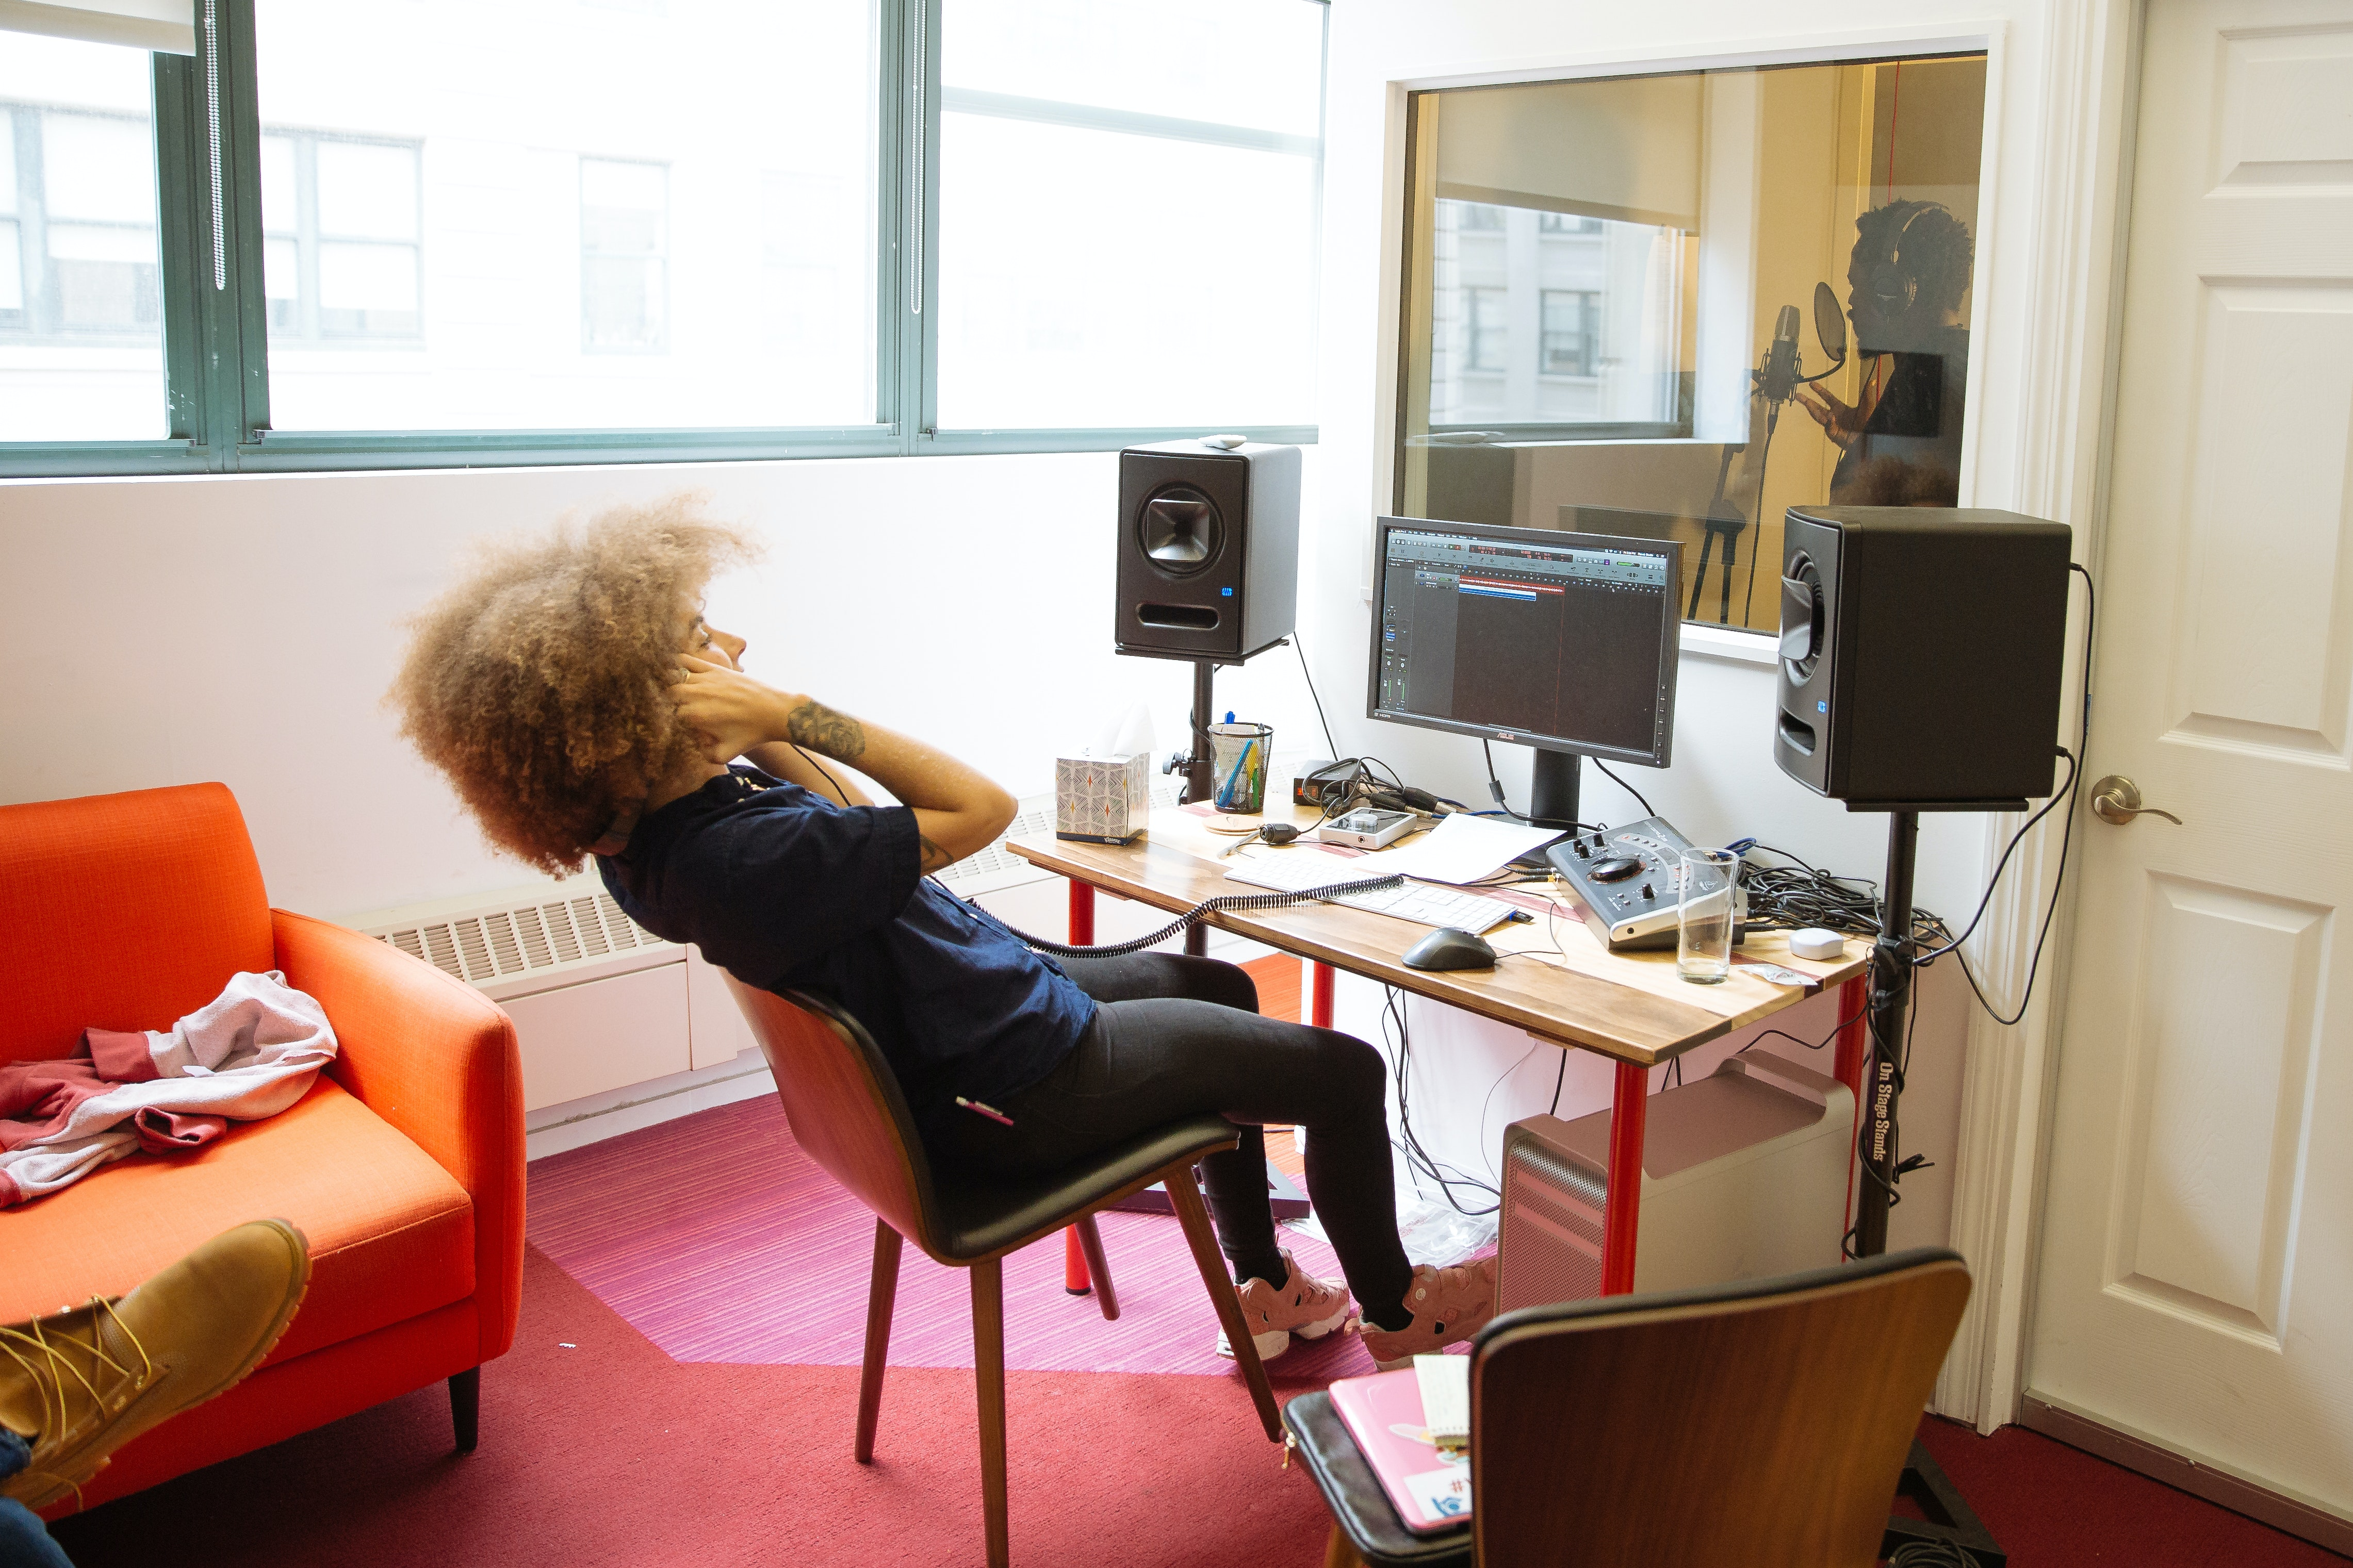 An artist records a track in Flocabulary's in-office recording studio